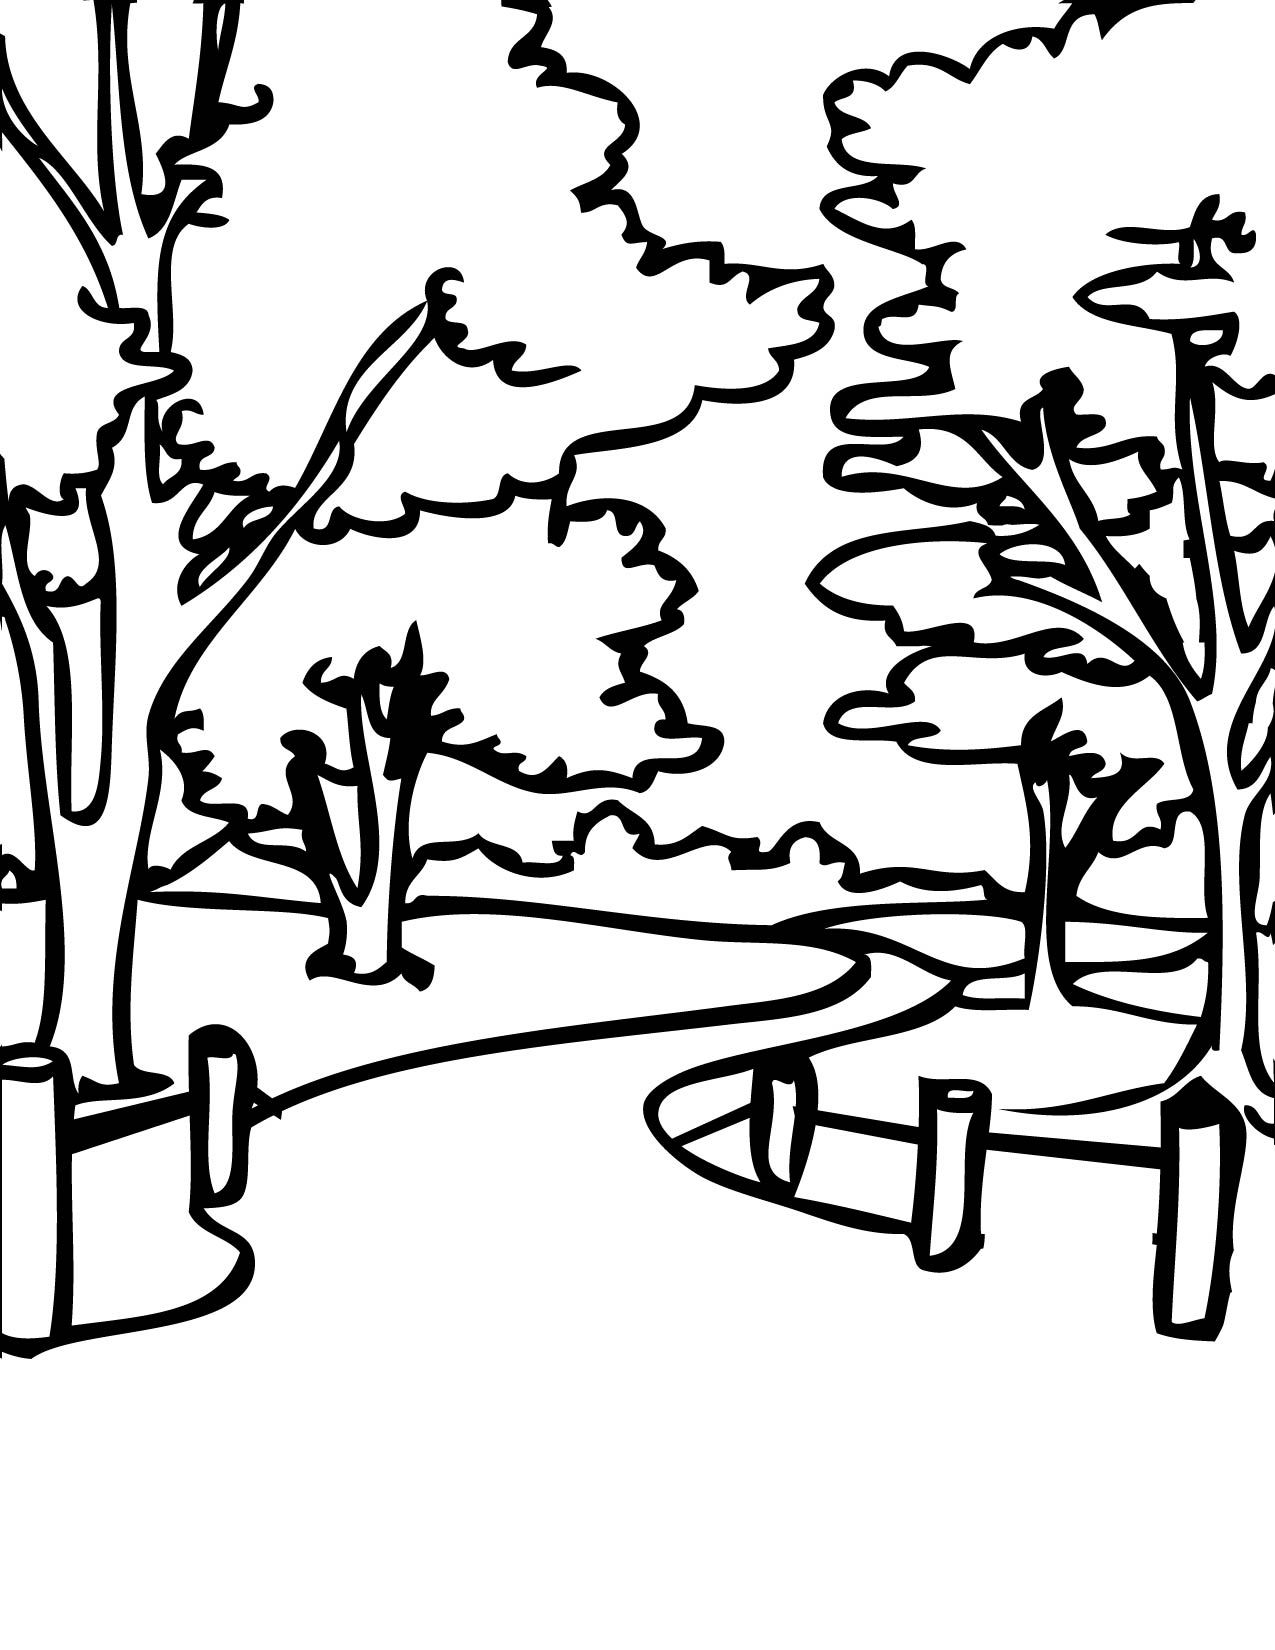 My Neighborhood Colouring Picture Coloring Books Coloring Pictures Coloring Pages